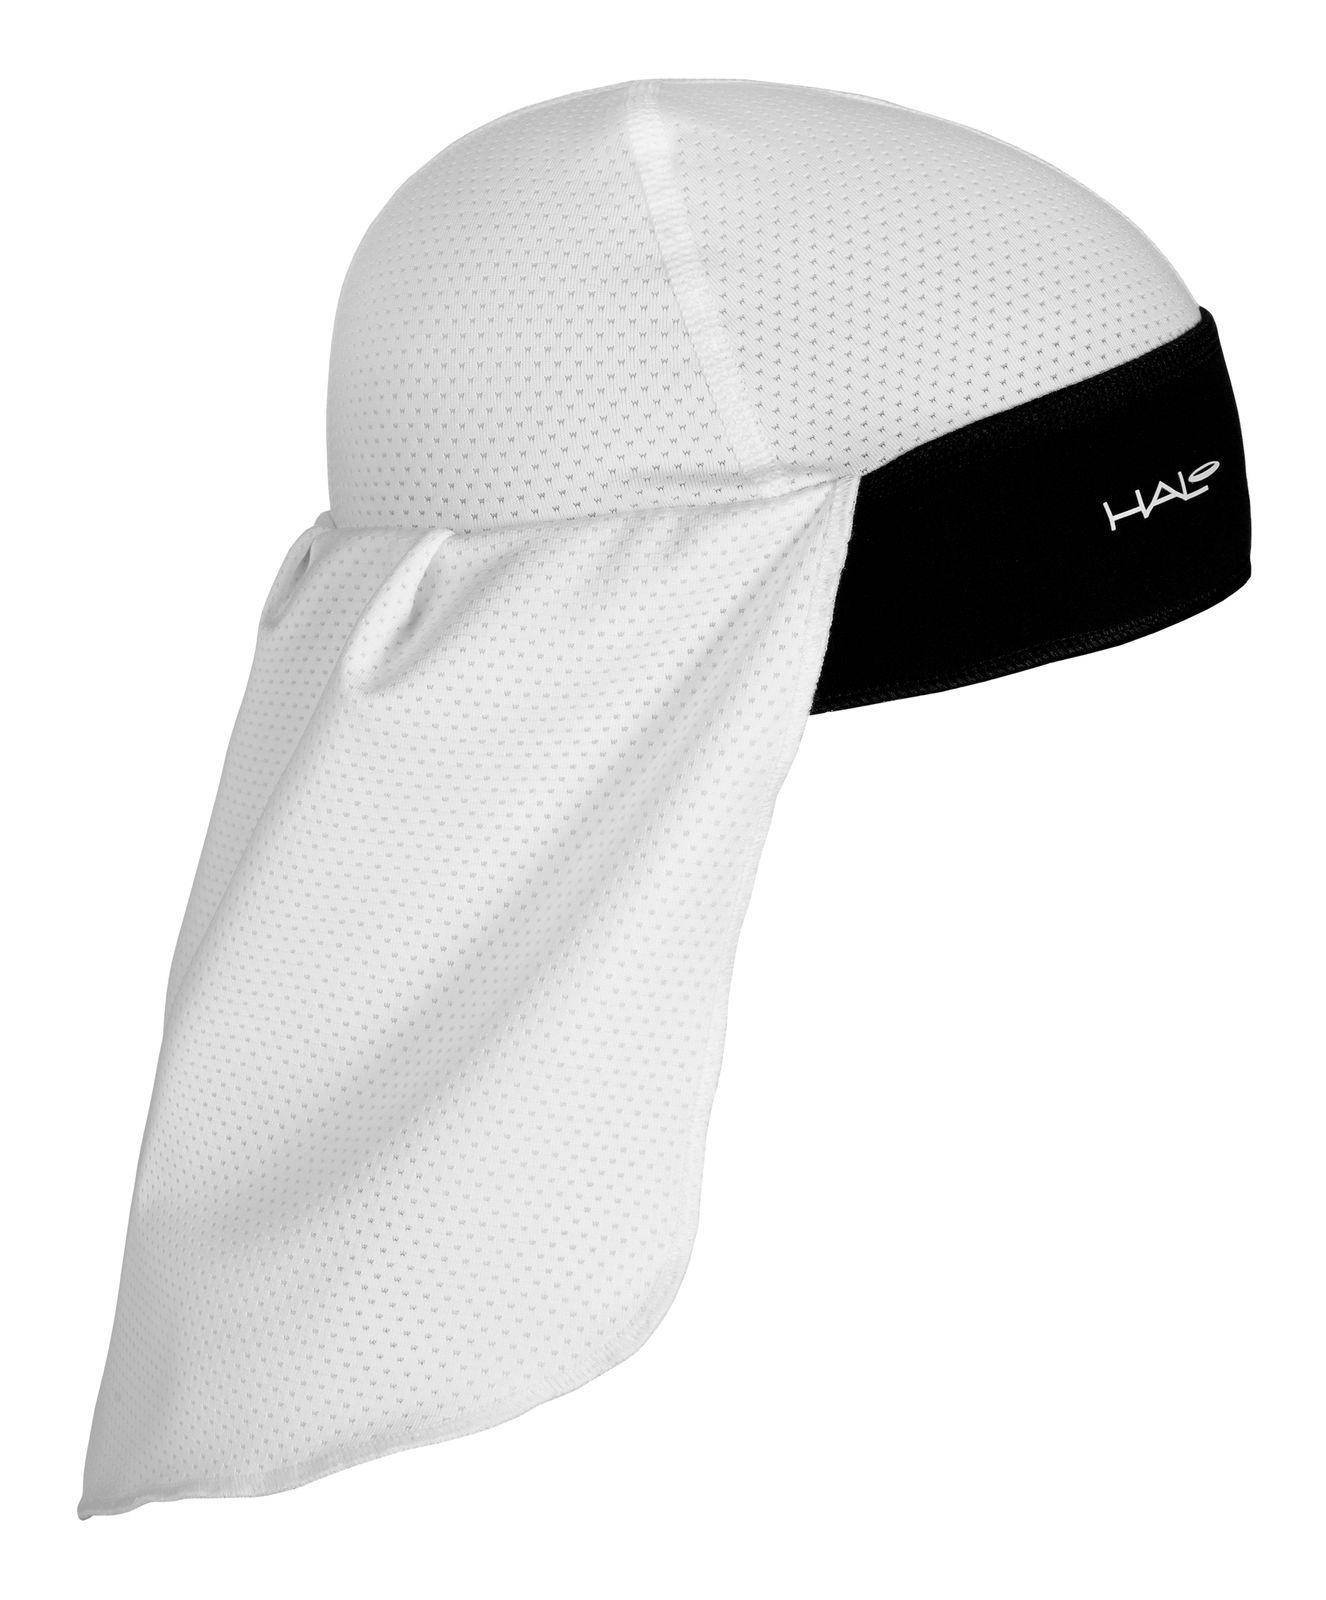 ce3396b1478 Halo Cap and Tail Sun Protection White l Mr Cycling World